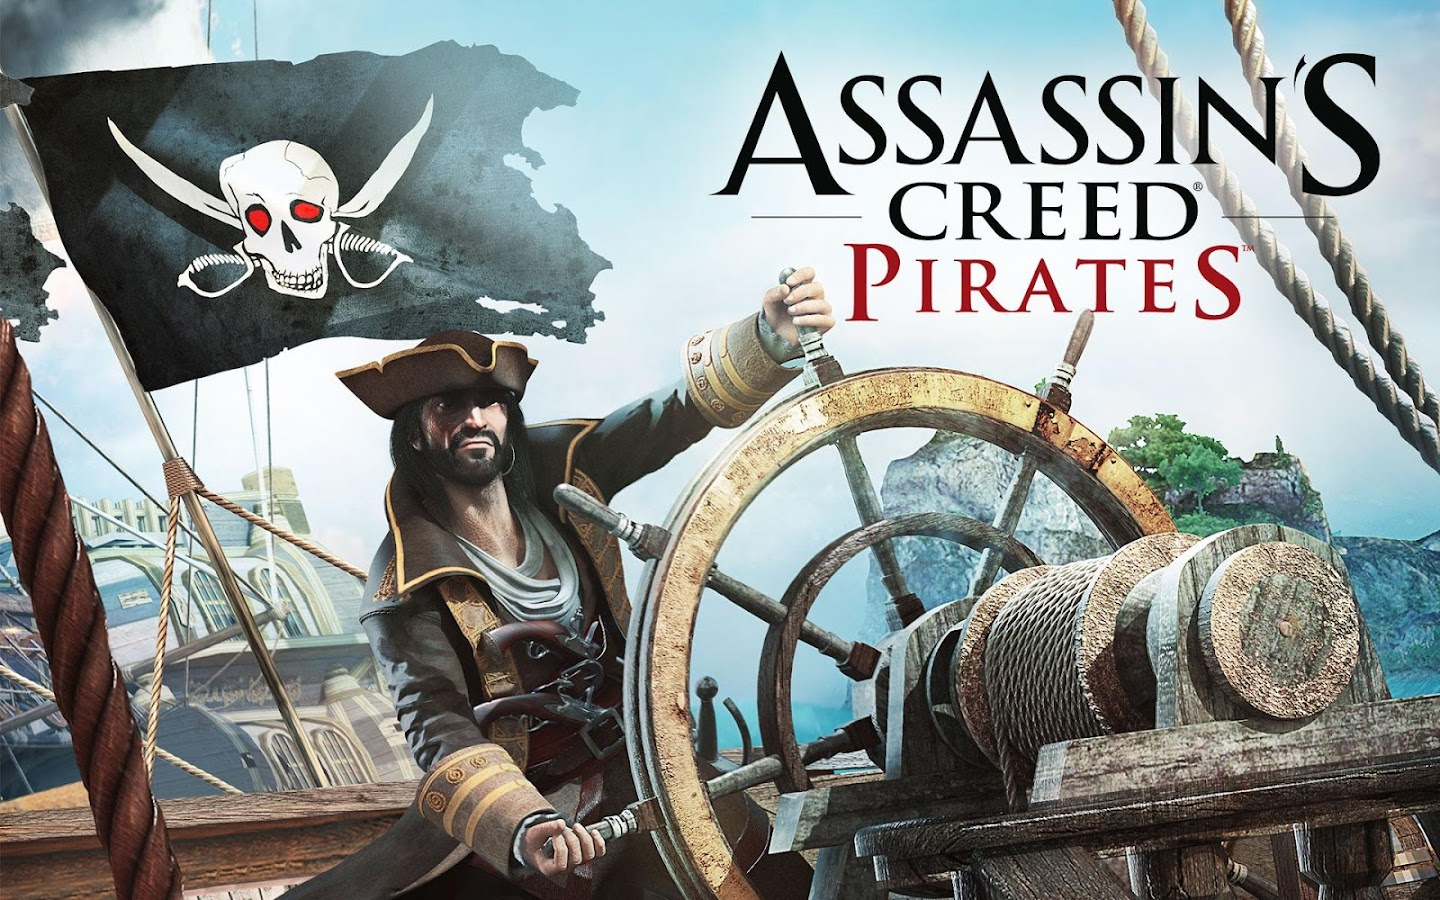 Download Game Offline Android Terbaik Assassin's Creed Pirates